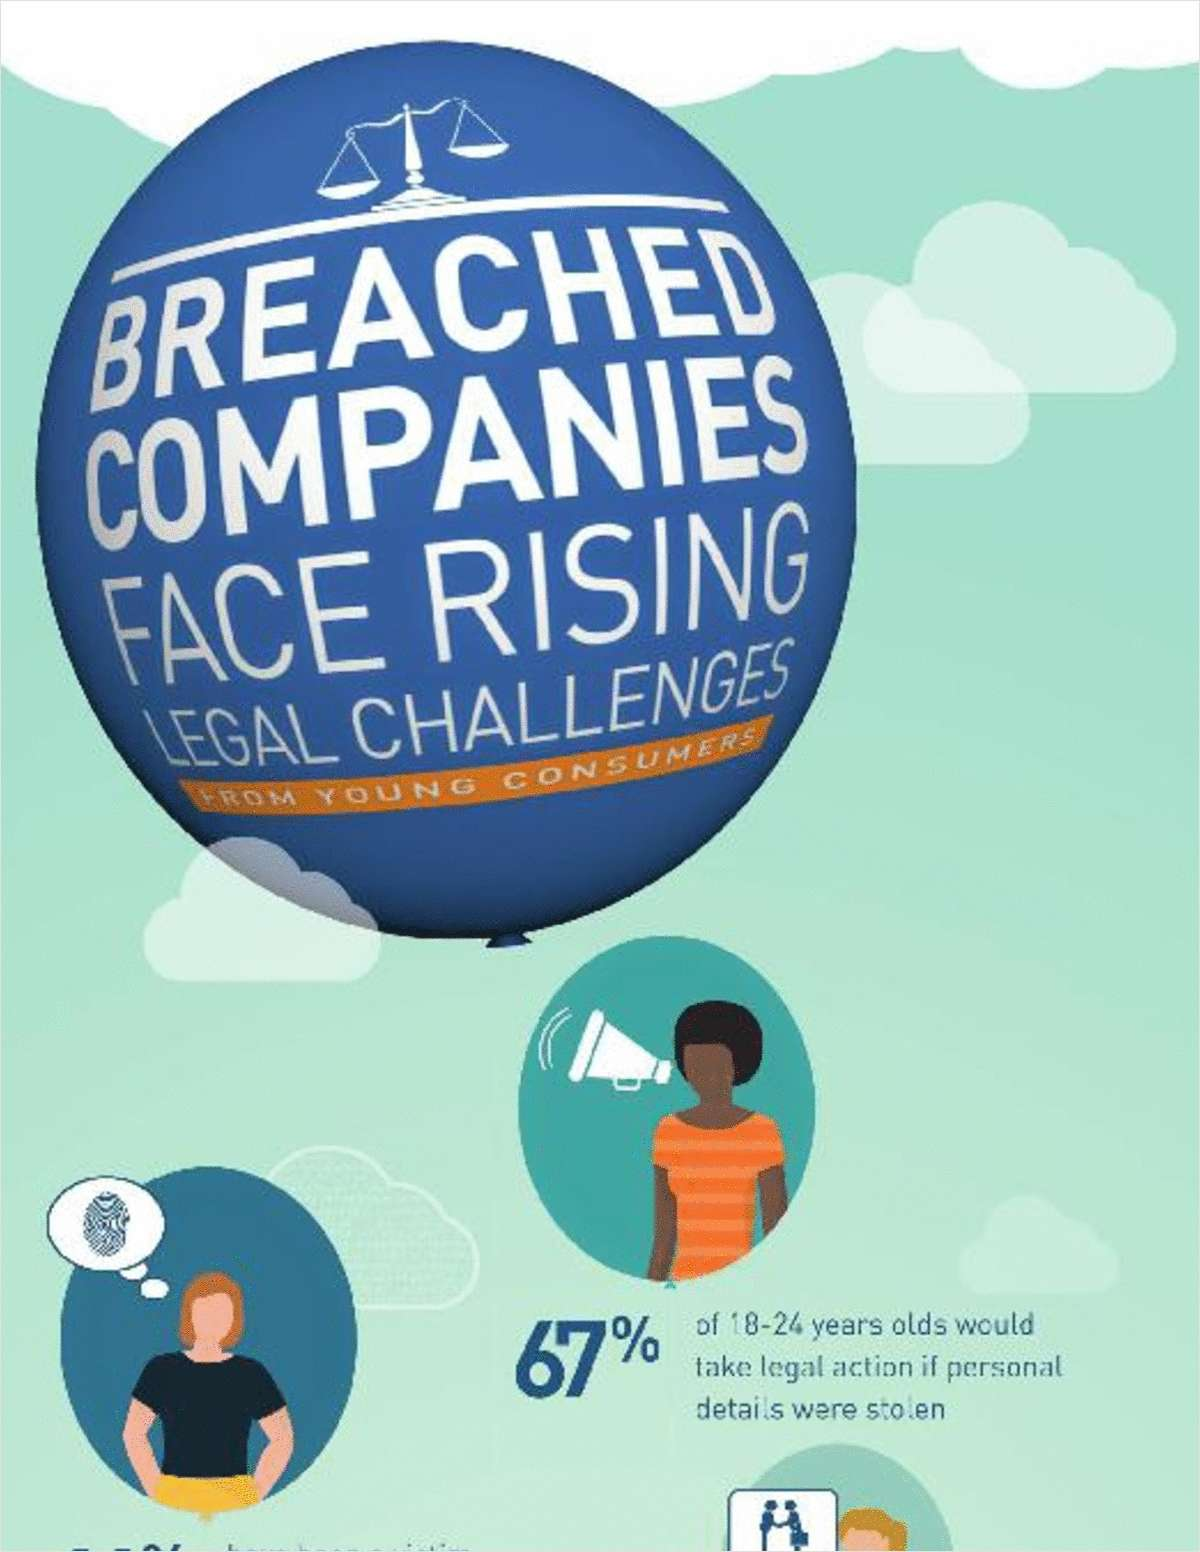 Breached Companies Face Rising Legal Challenges from Young Consumers